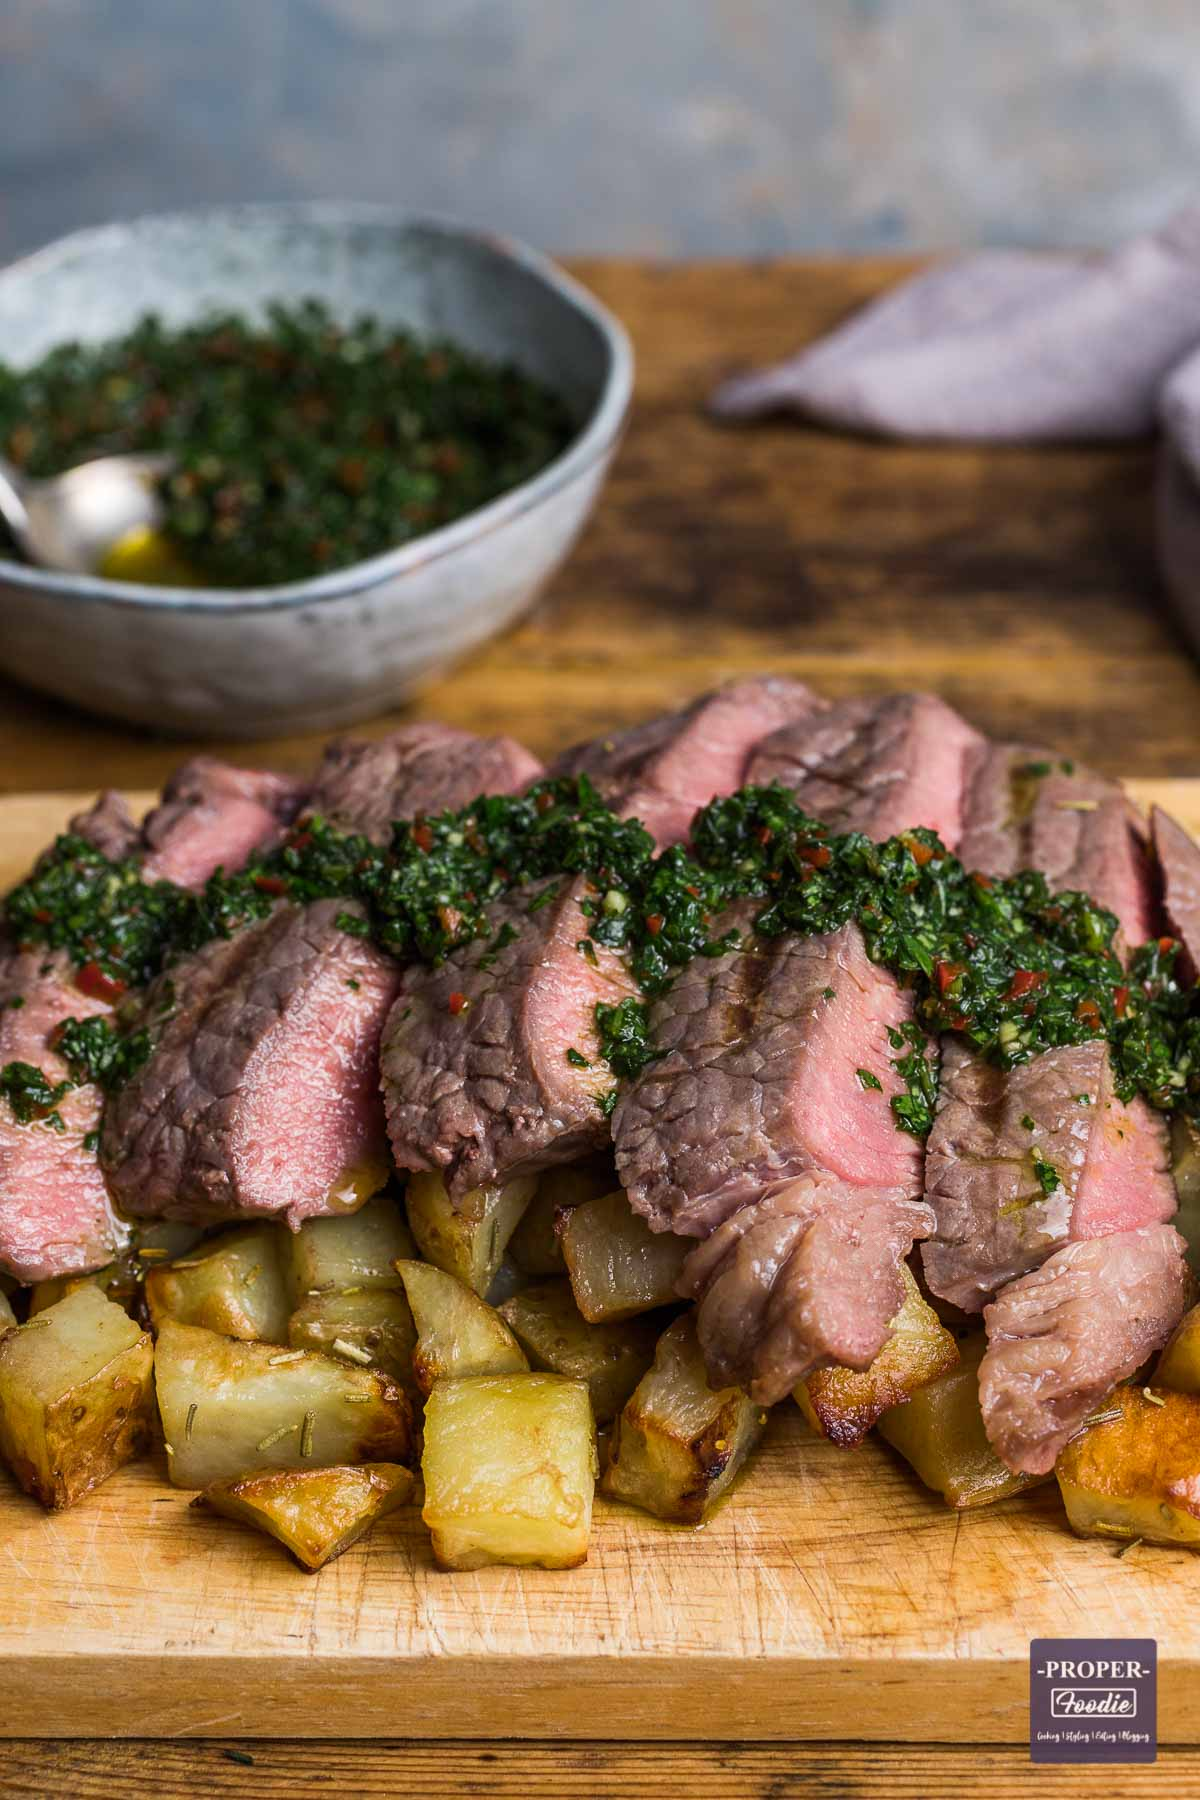 Slices of rump steak cooked medium rare and served over cubed potatoes with a chimichurri dressing drizzled over the top.